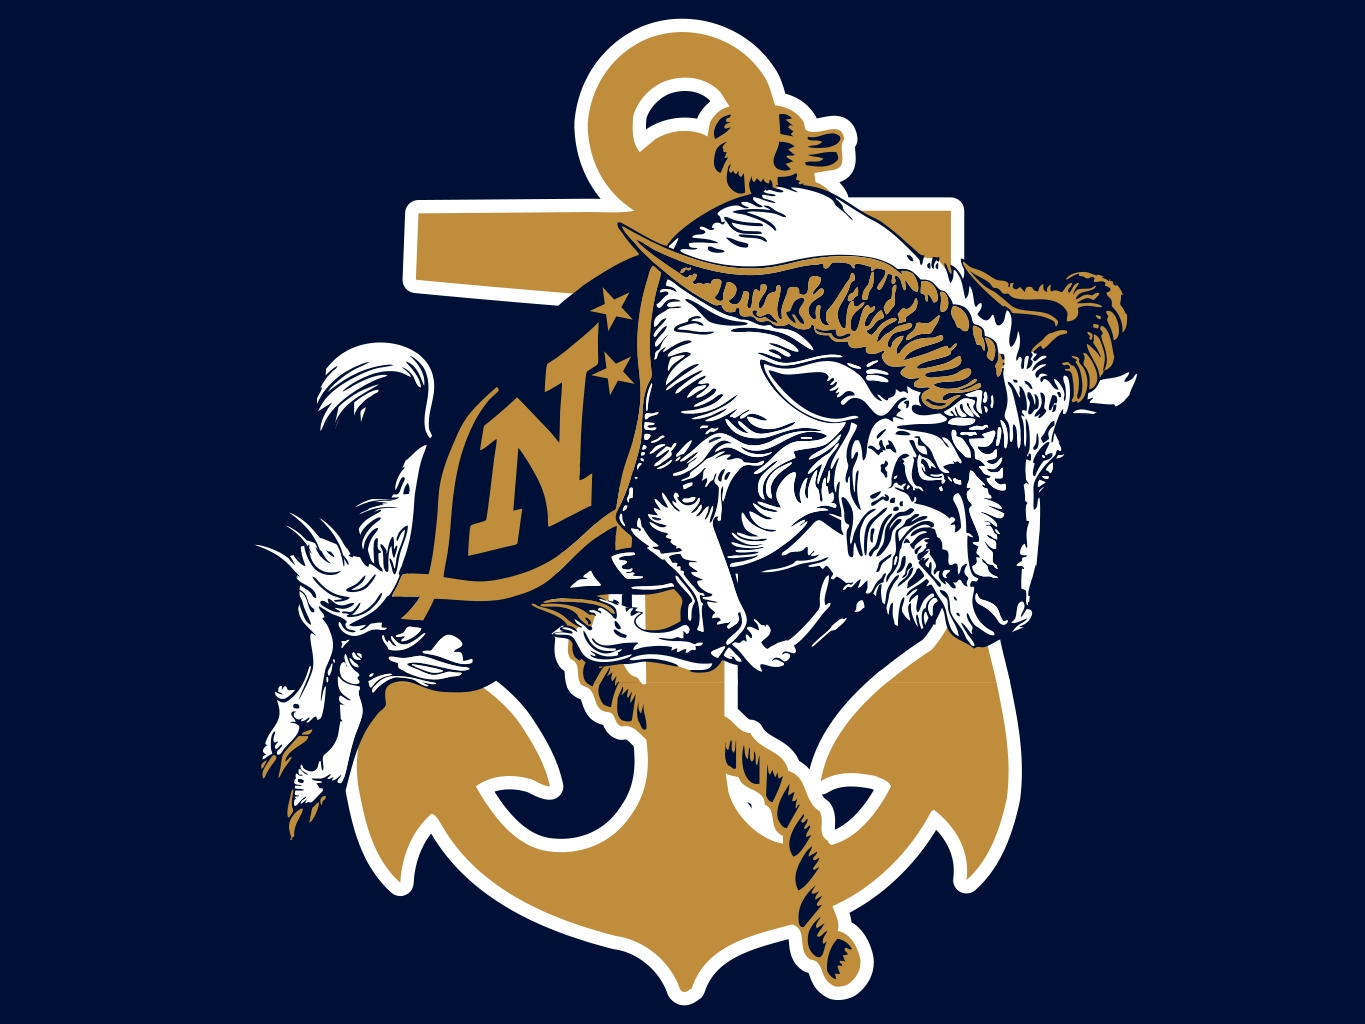 Navy Football Logo Wallpaper Images Pictures   Becuo 1365x1024